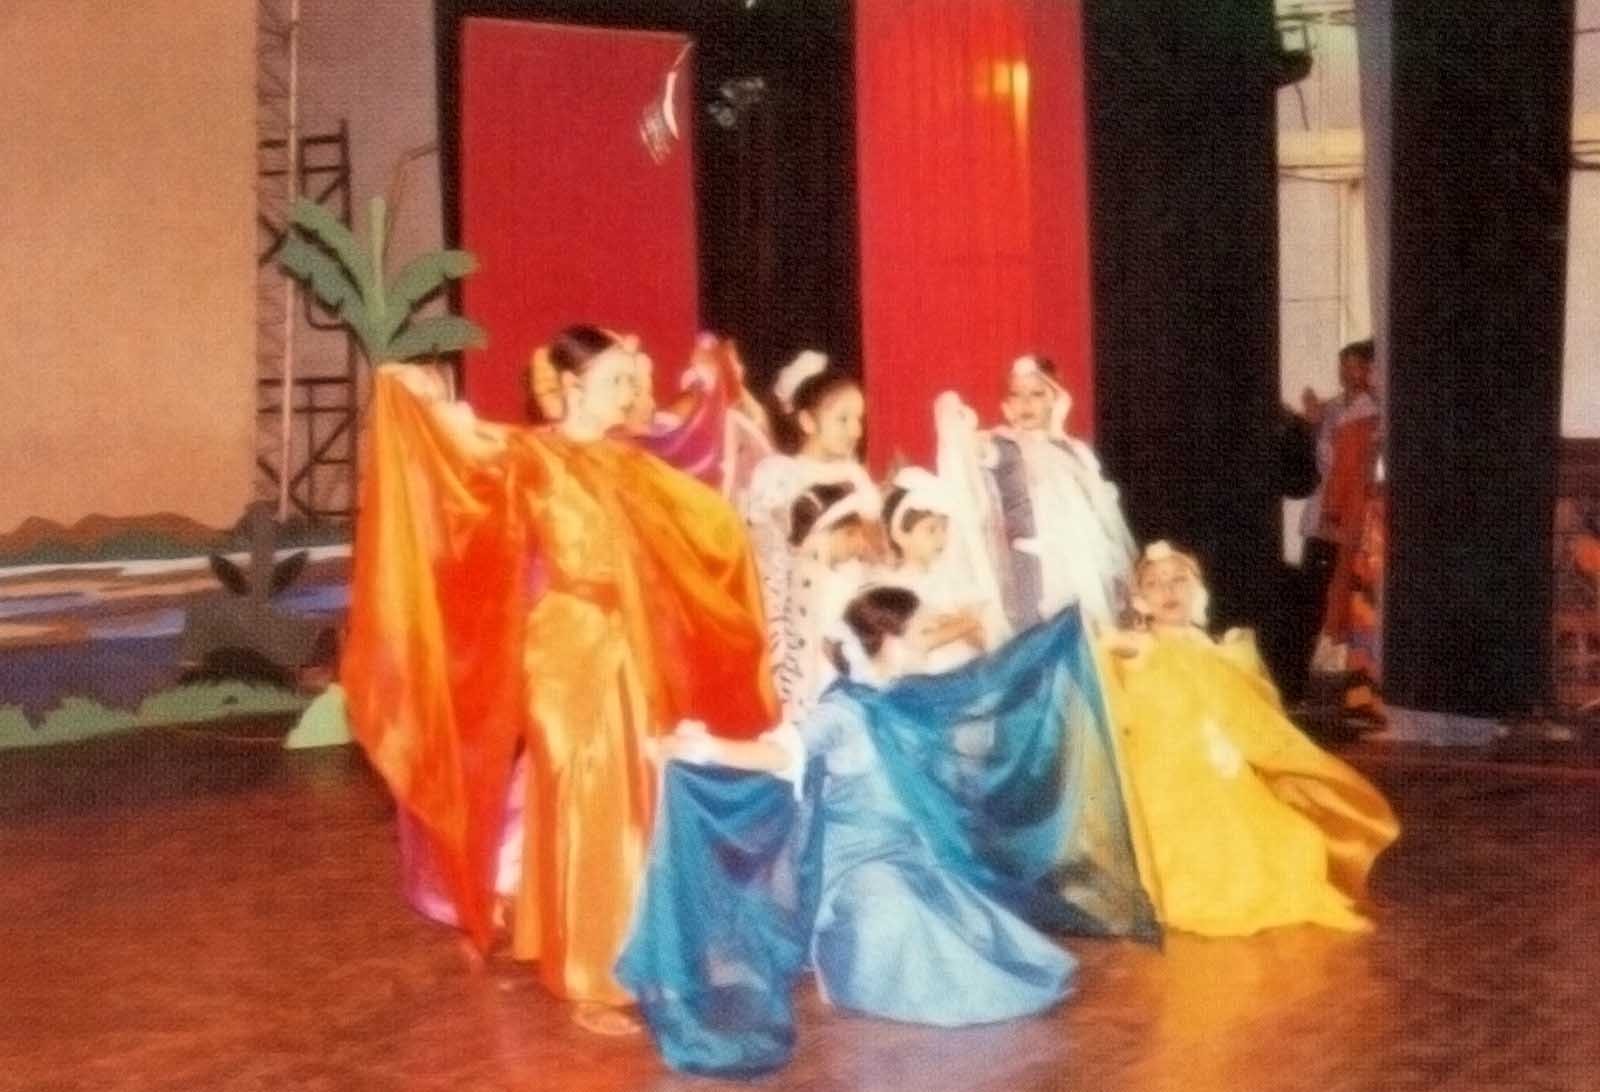 Another glimpse of the cultural program of the 13th ACMR Bangladesh, 1997